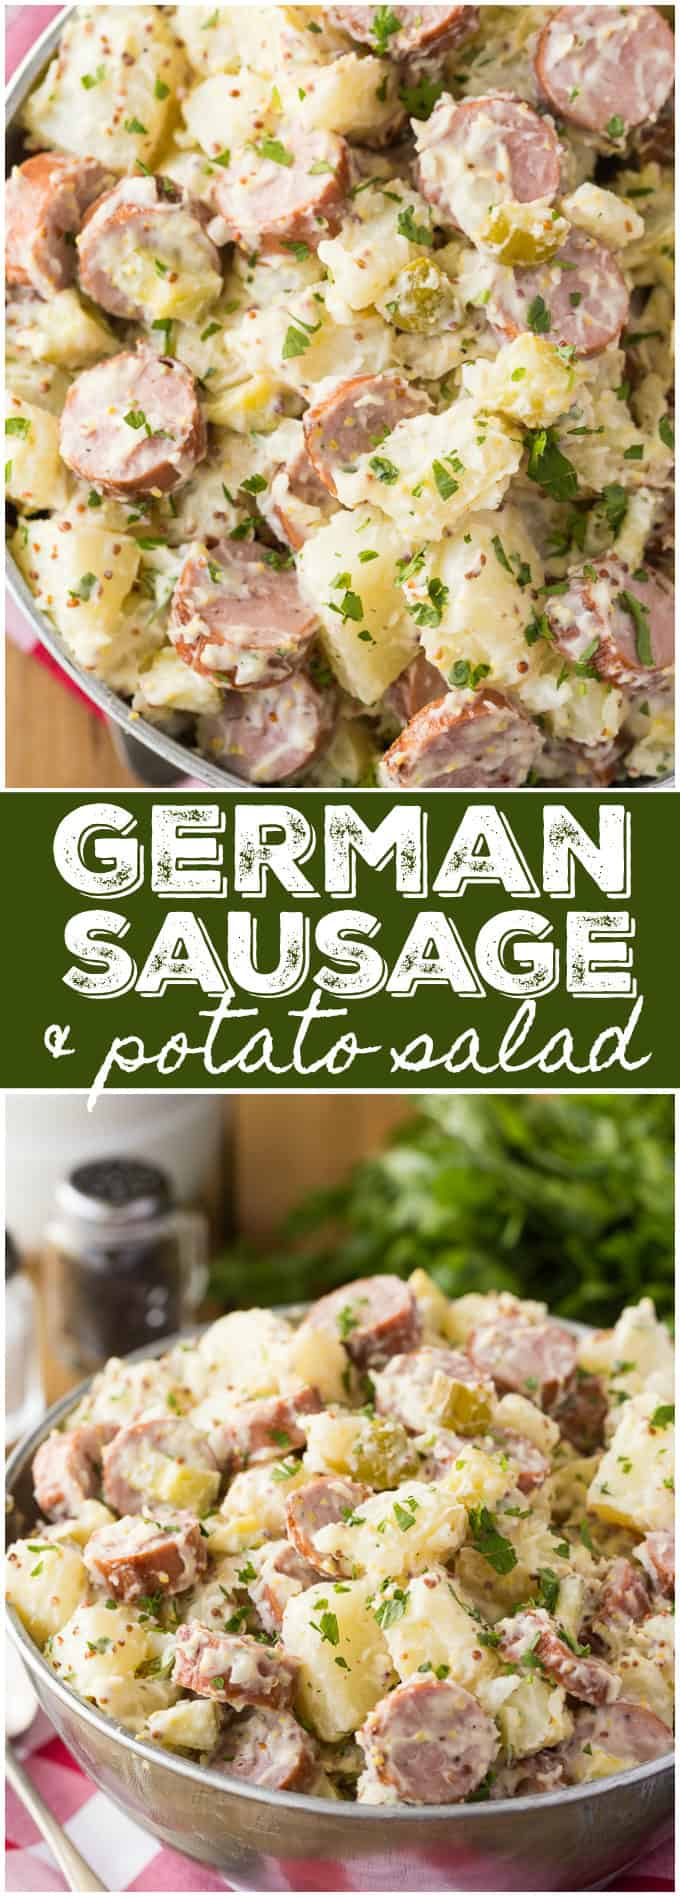 German Sausage & Potato Salad - You'll love how creamy this savoury/smoky salad is! It's the perfect summer side for your BBQs.